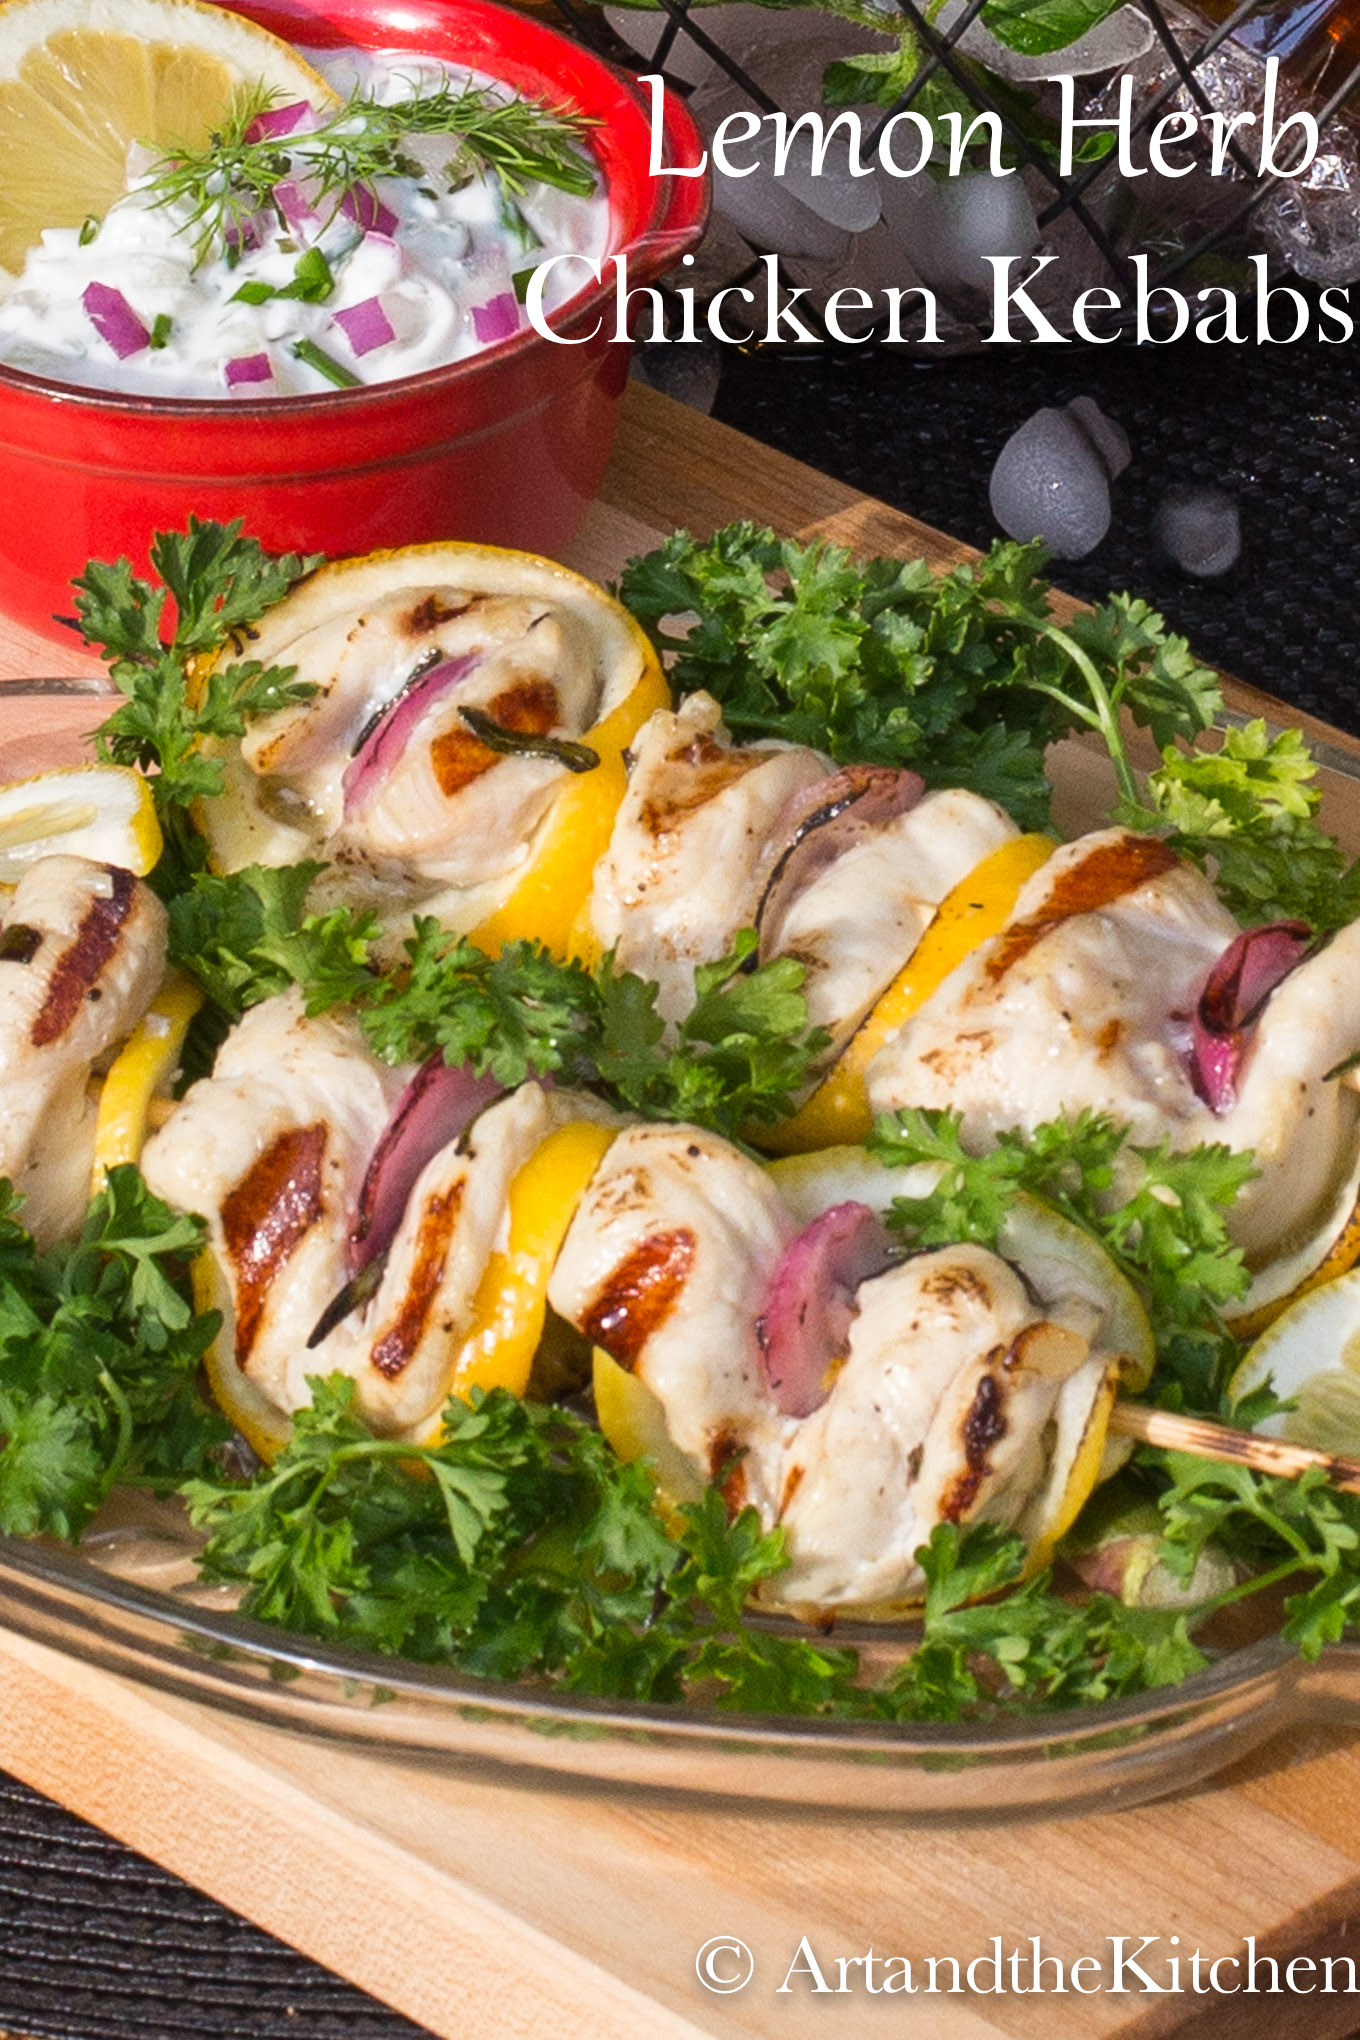 Lemon Herb Chicken Kebabs